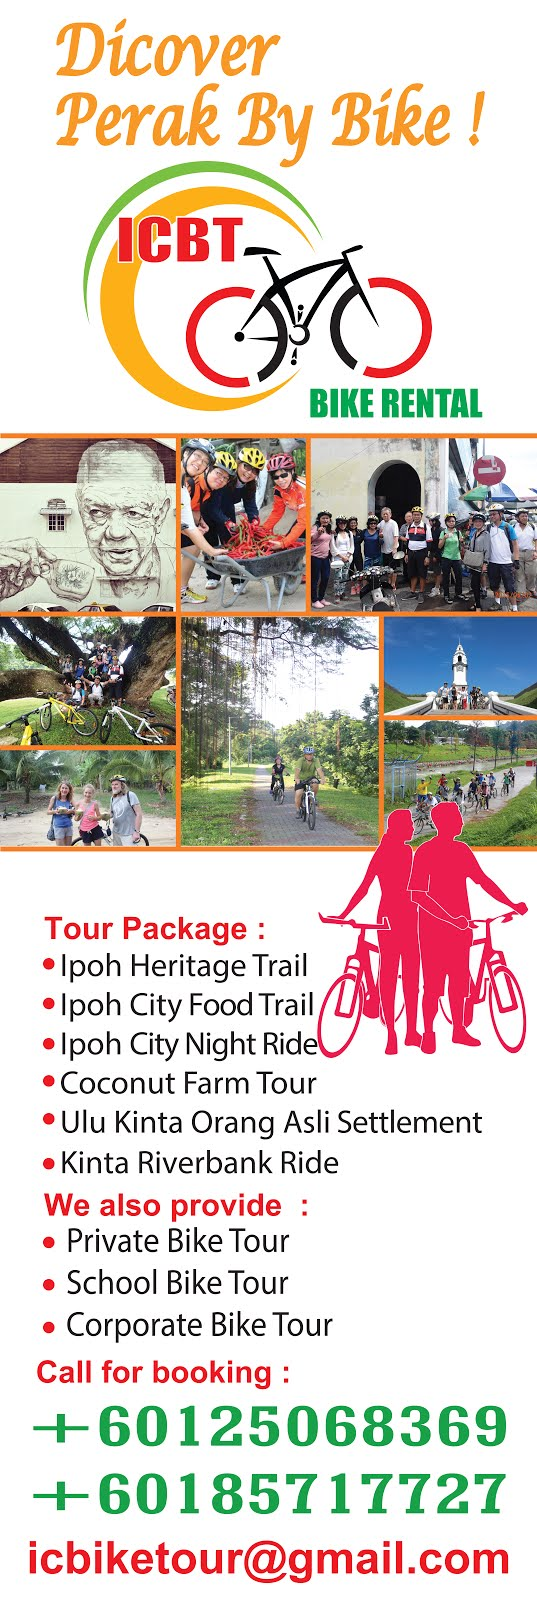 IPOH CITY BIKE TOUR/RENTAL